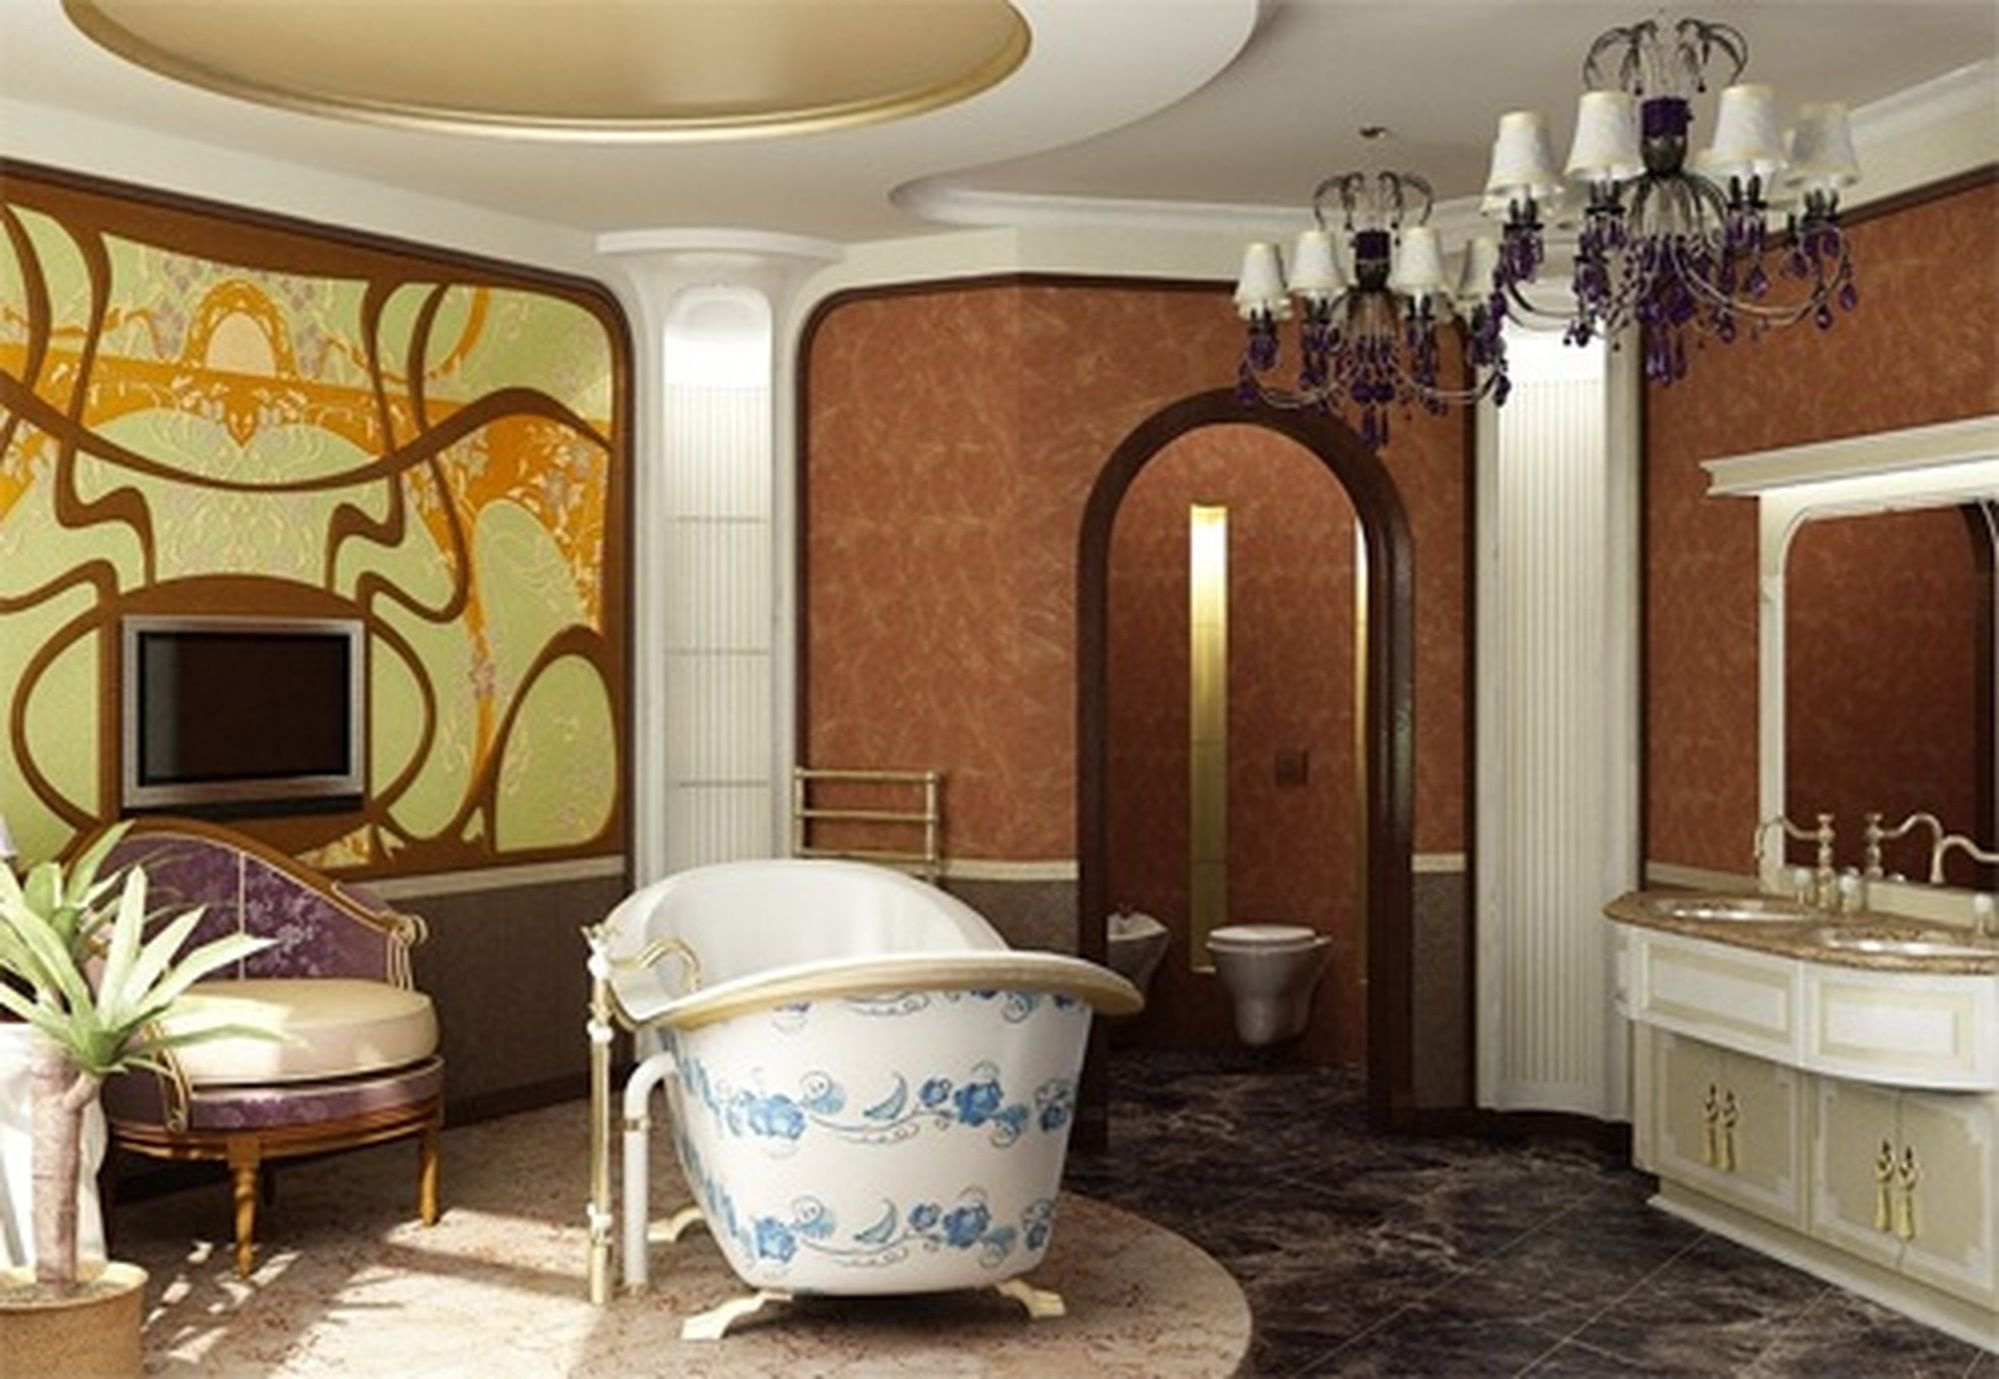 bathroom in the art nouveau style as well as other facilities can be decorated with stained glass windows artistic stained glass will be appropriate for - Art Nouveau Interior Design Style